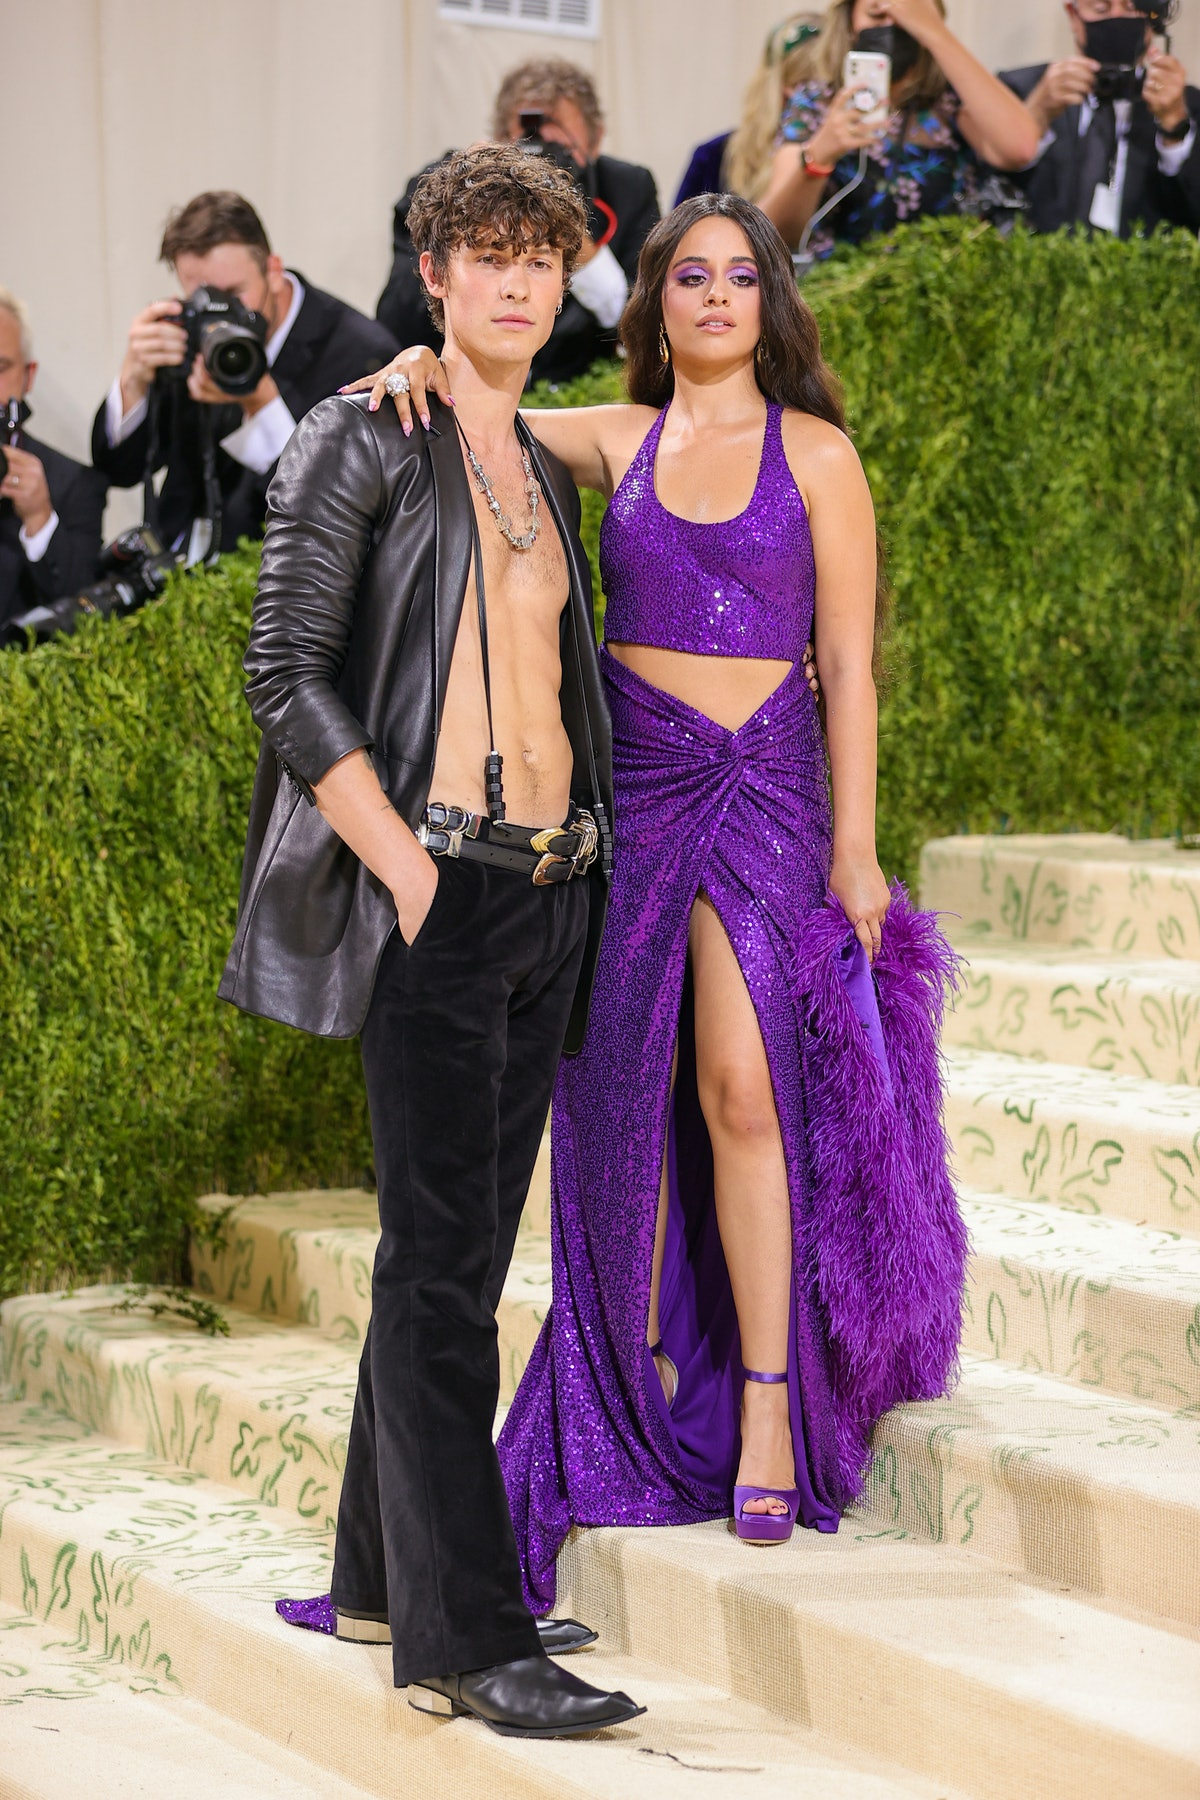 Shawn Mendes and Camilla Cabello attend The 2021 Met Gala Celebrating In America: A Lexicon Of Fashi...